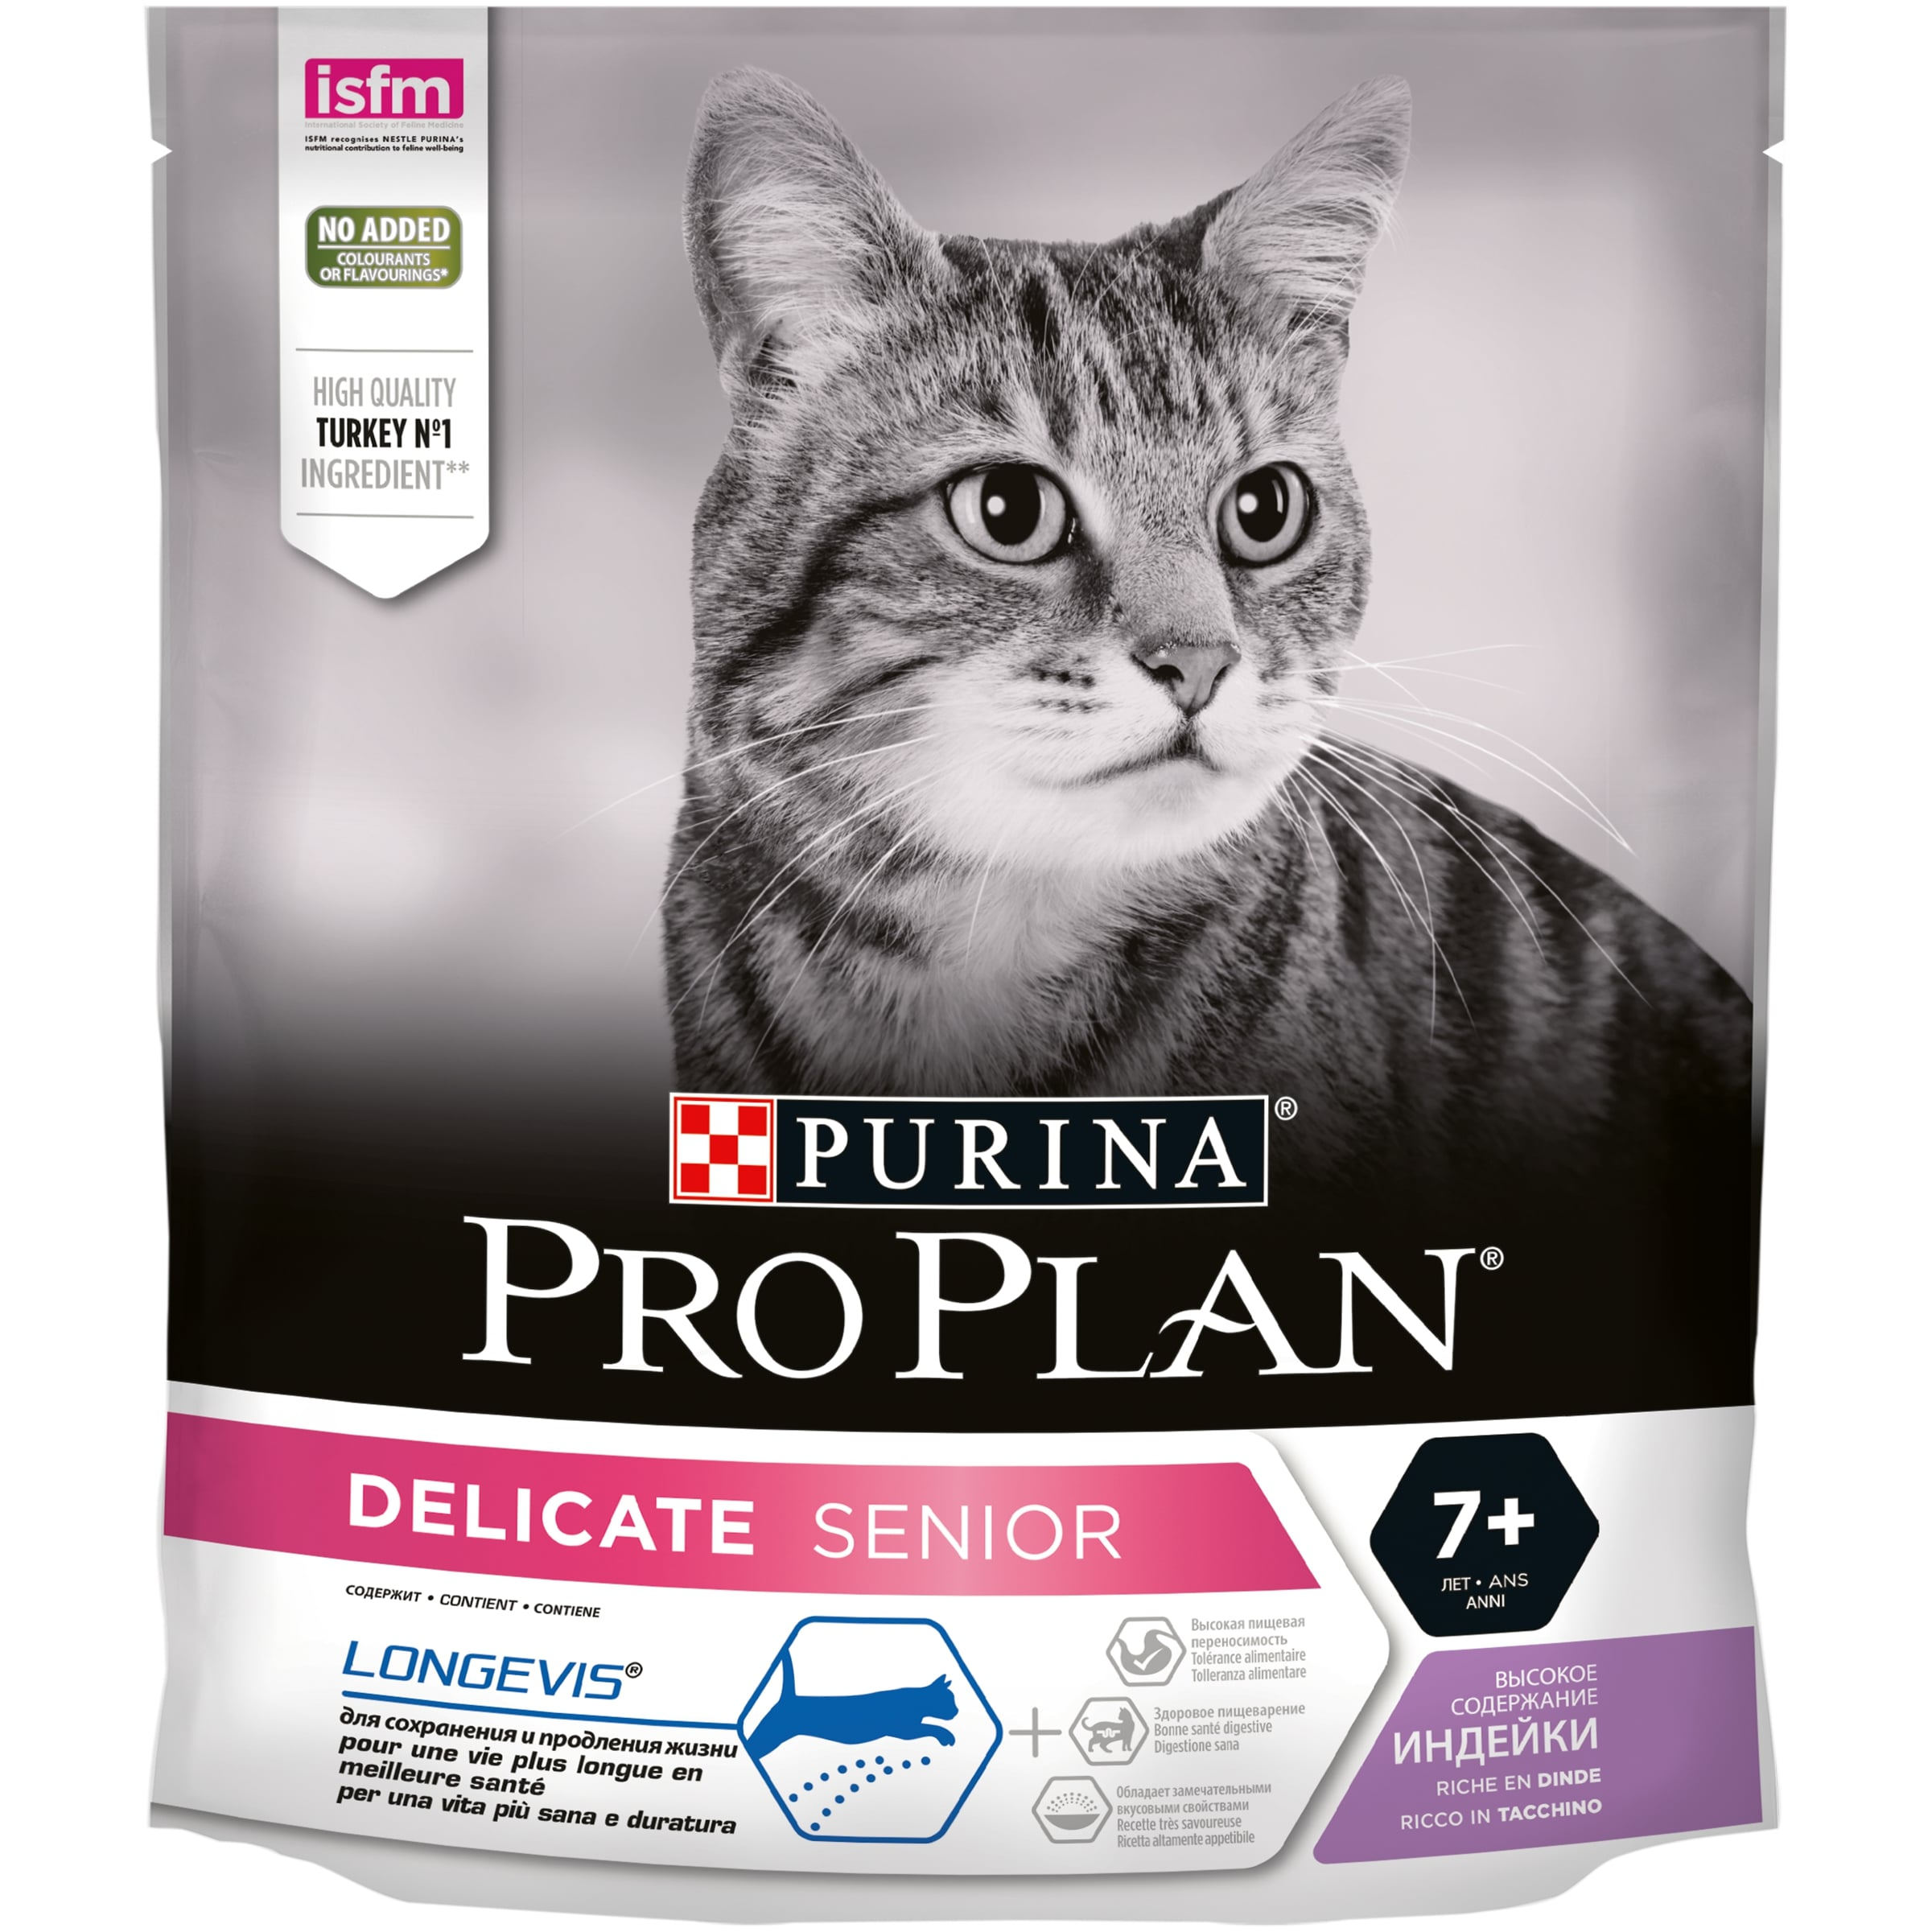 Set of dry food Pro Plan Delicate Senior for adult cats over 7 years old with sensitive digestion, with turkey, 8 pcs. x 400 g pro plan delicate senior dry food for adult cats over 7 years old with sensitive digestion with turkey package 3 kg